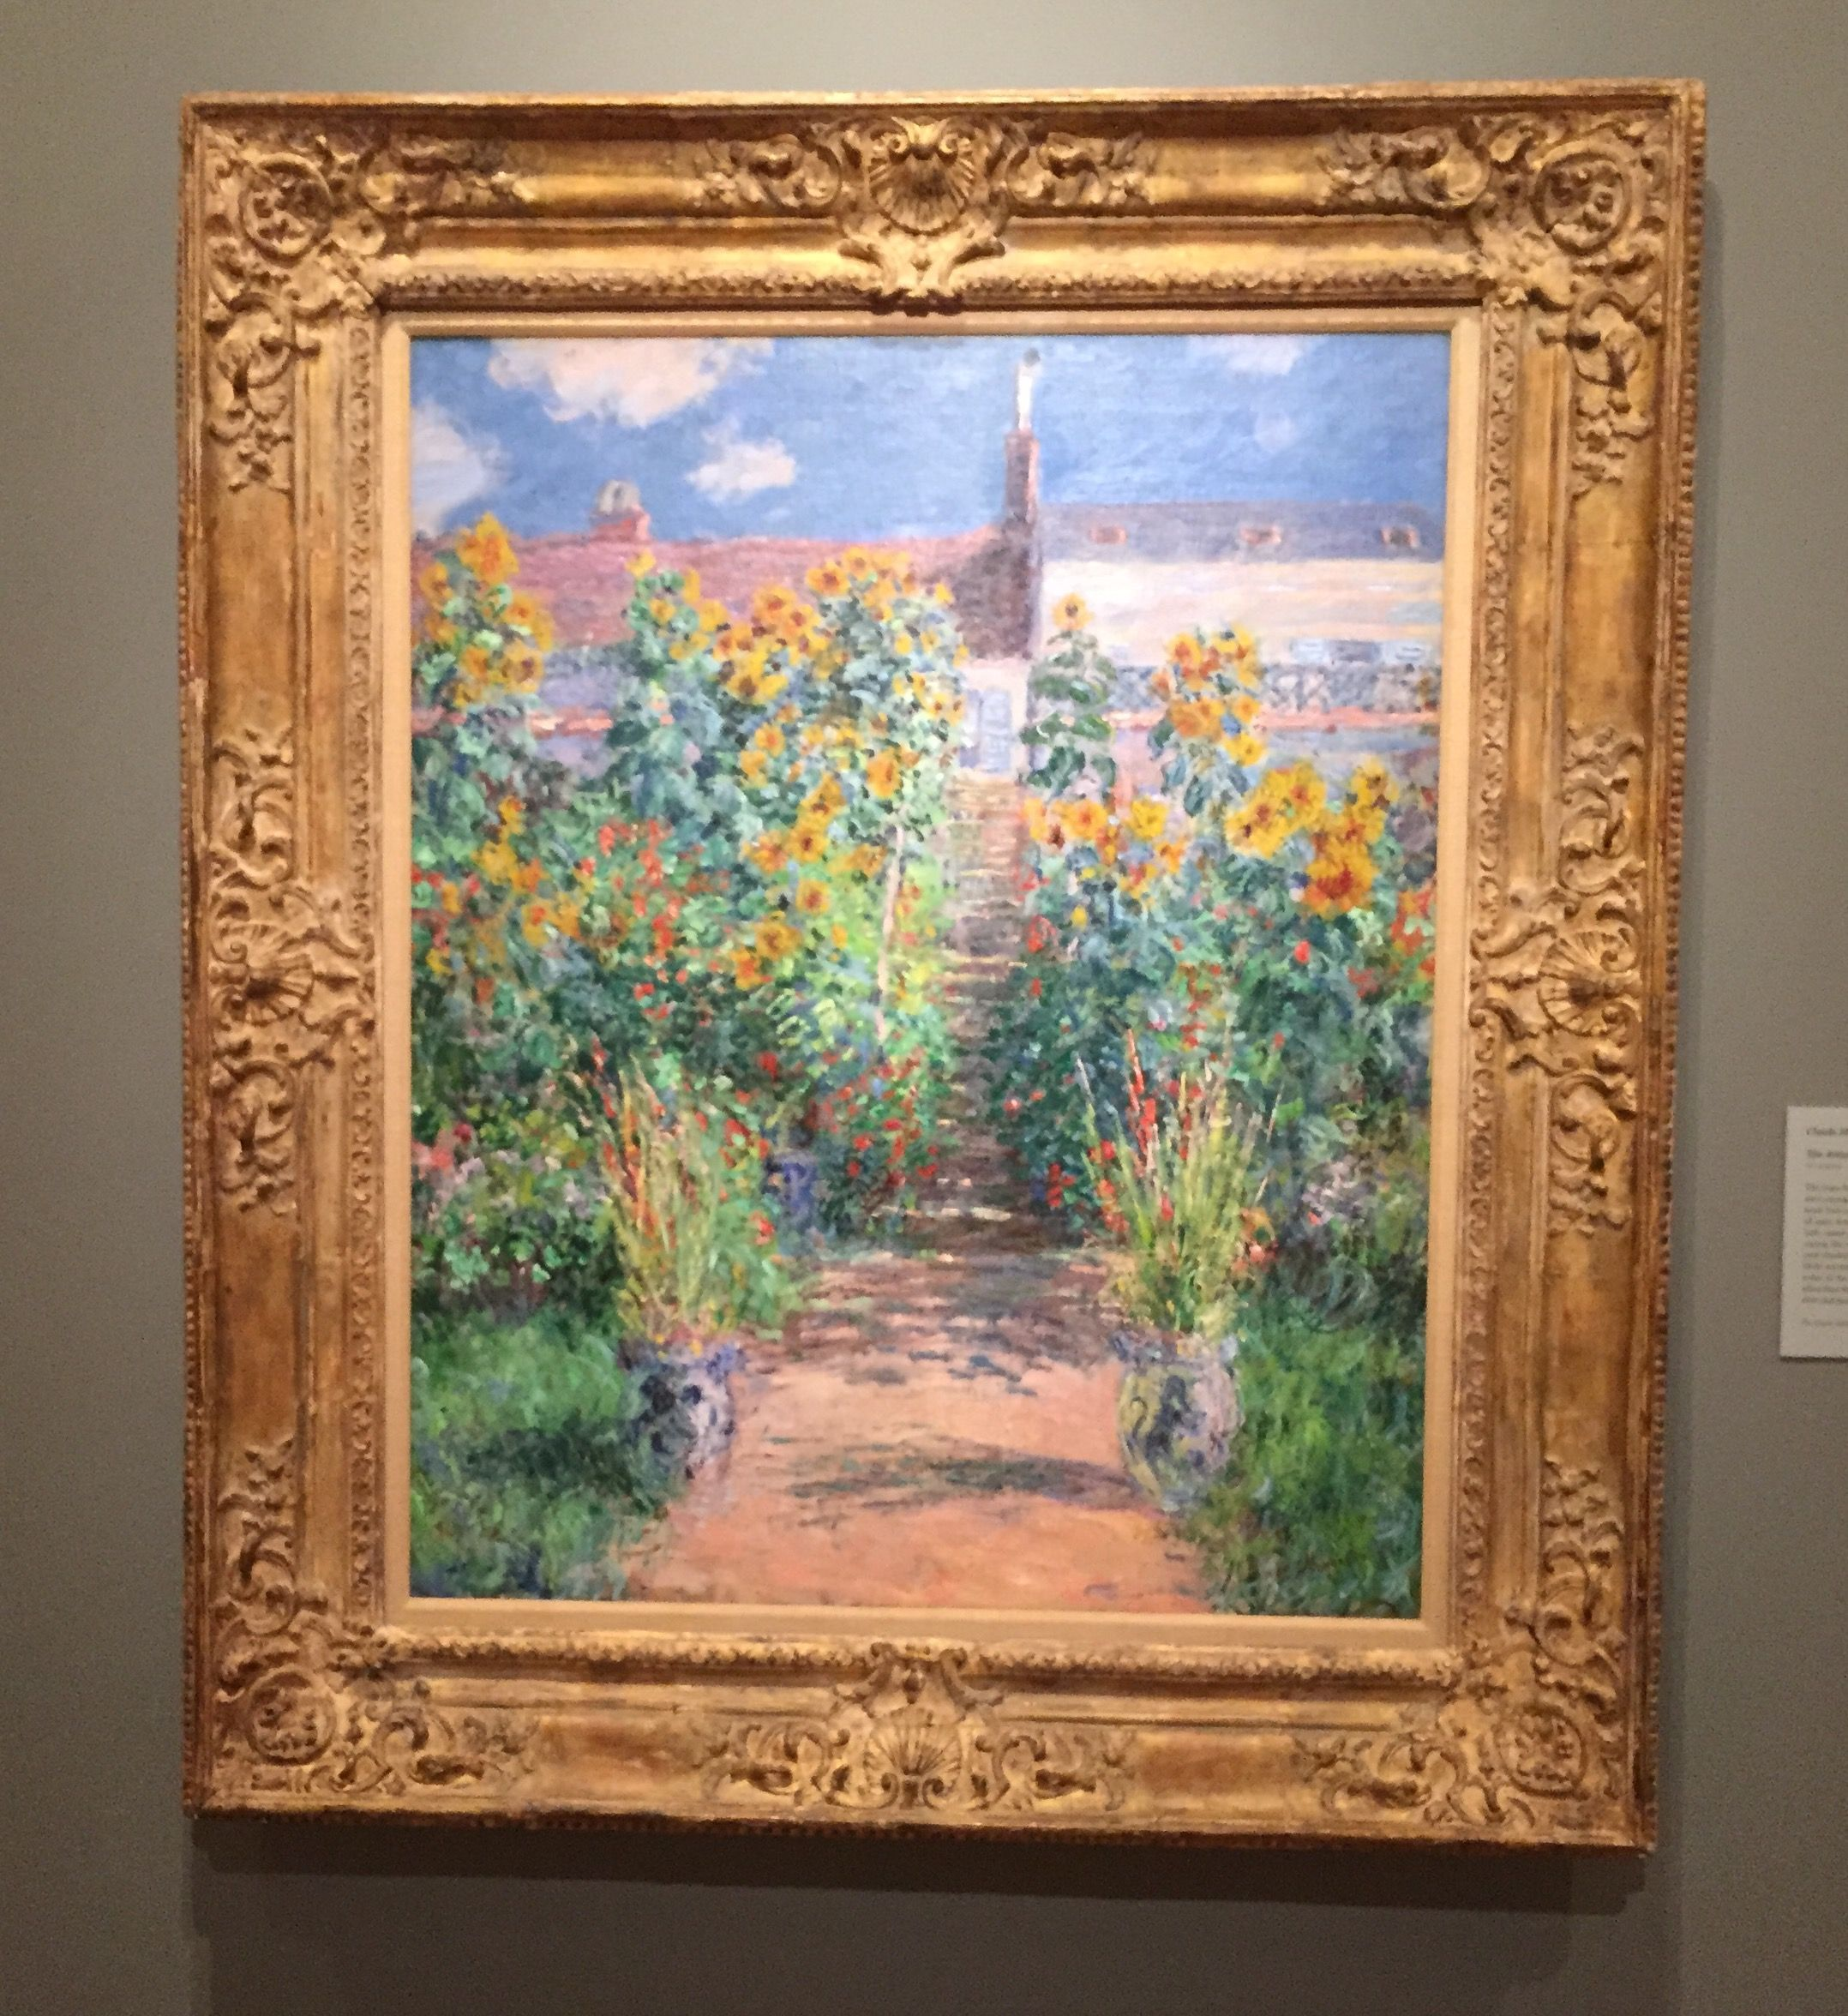 The Artistu0027s Garden At Vétheuil, Claude Monet, The Norton Simon Museum,  Pasadena,